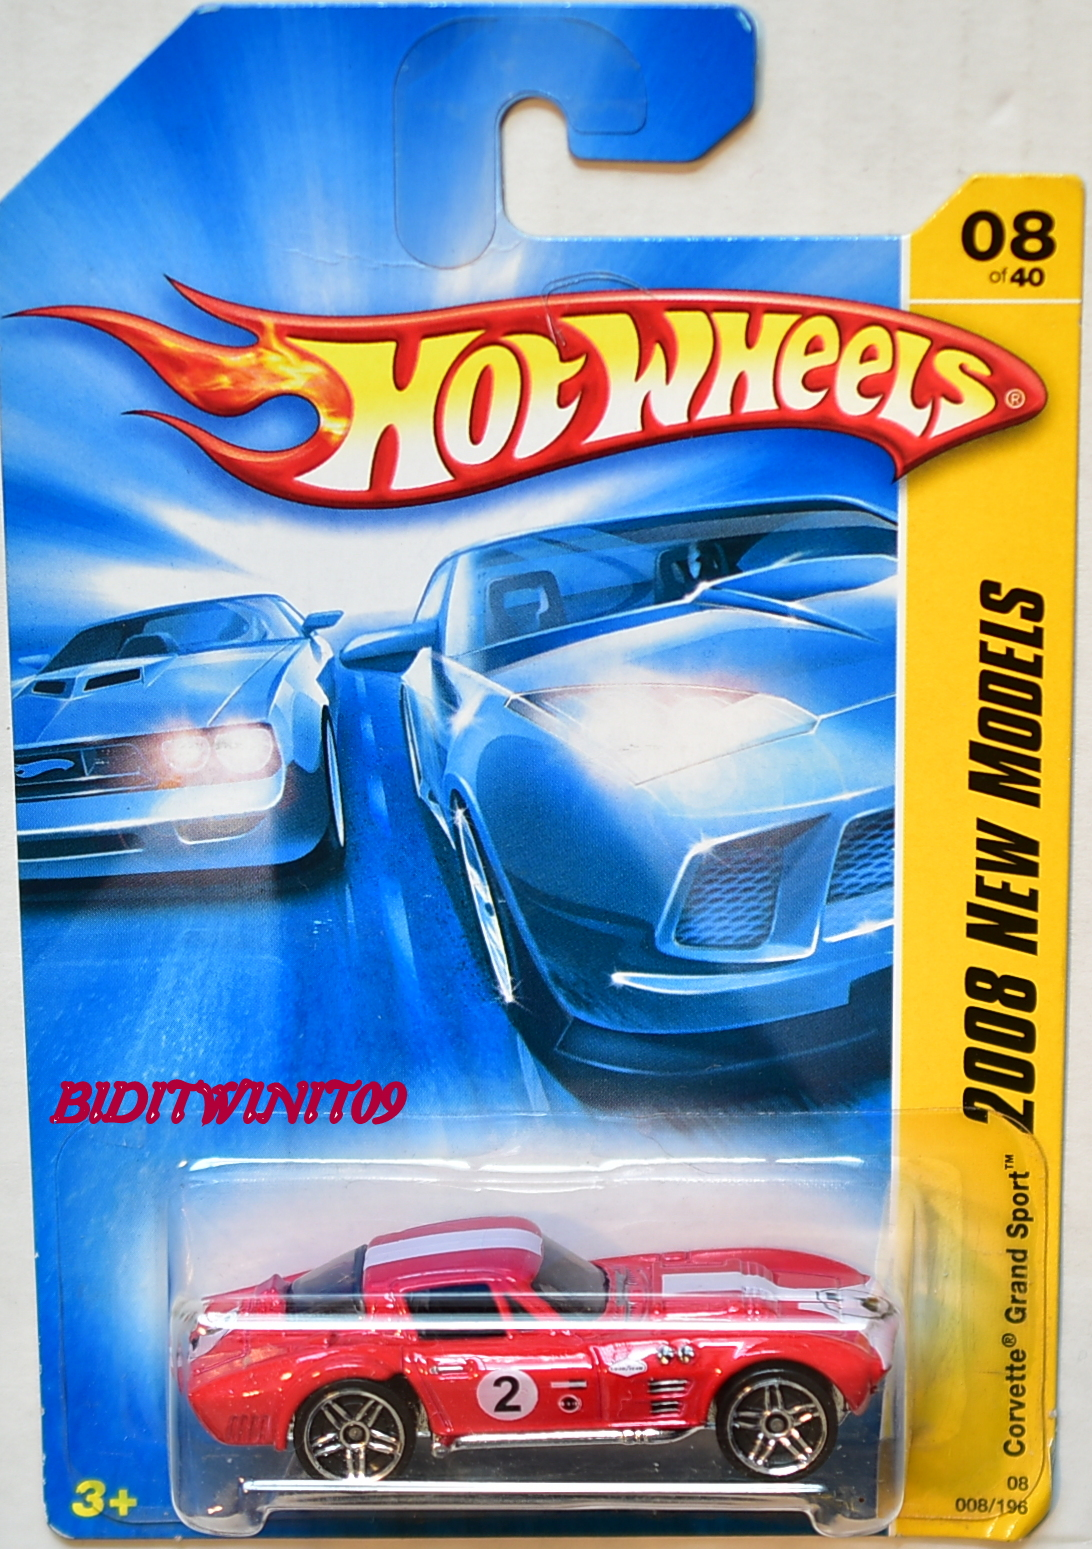 HOT WHEELS 2008 NEW MODELS CORVETTE GRAND SPORT #08/40 RED